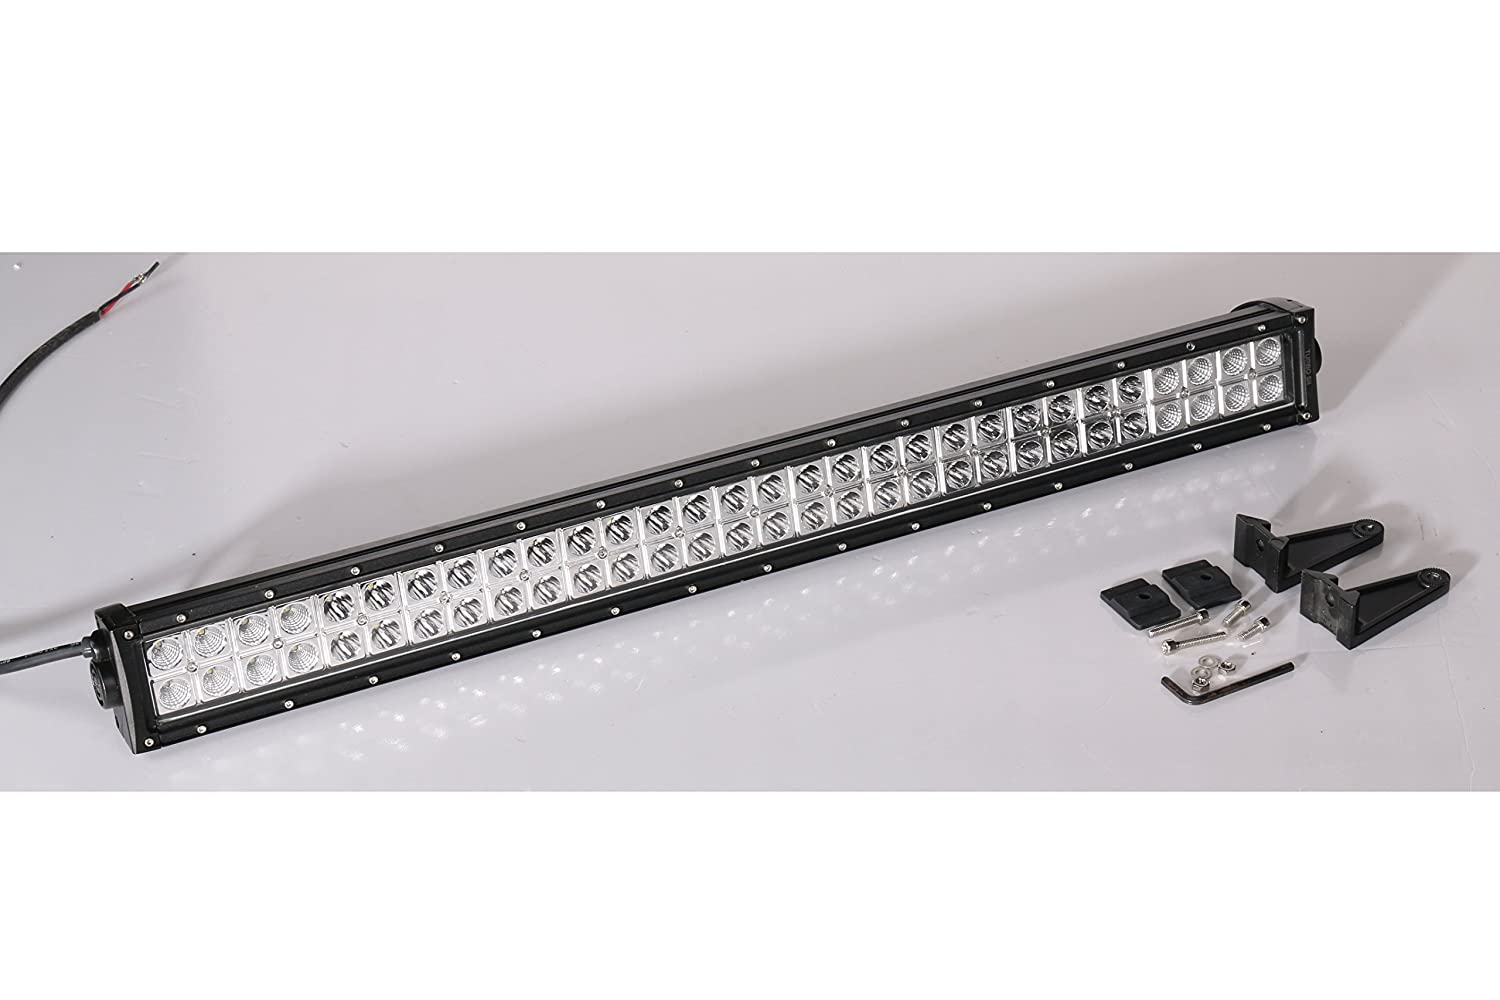 30 32 inch led light bar osram offroad front bumper grill mount 30 32 inch led light bar osram offroad front bumper grill mount chevrolet ford 611553535170 ebay aloadofball Choice Image